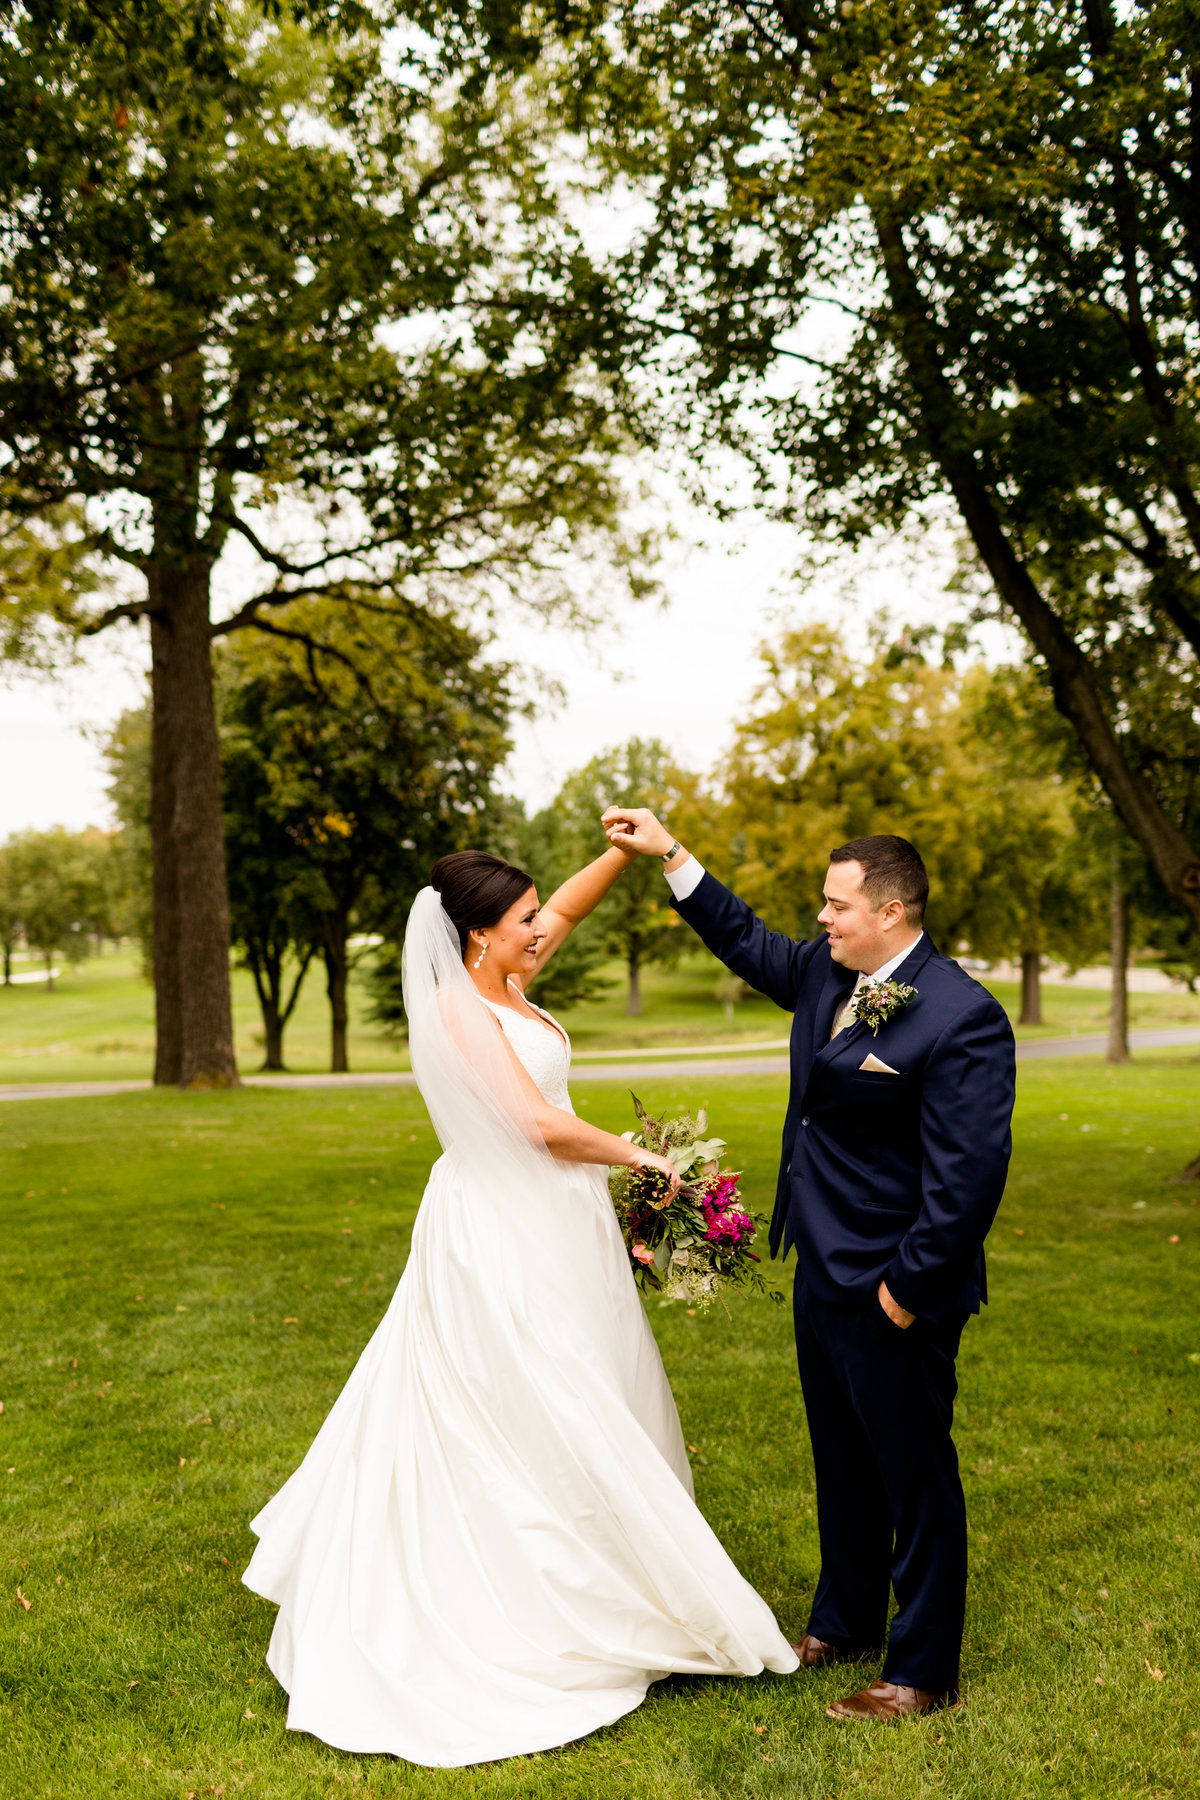 Caitlin and Luke Photography Wedding Engagement Luxury Illinois Destination Colorful Bright Joyful Cheerful Photographer 6262